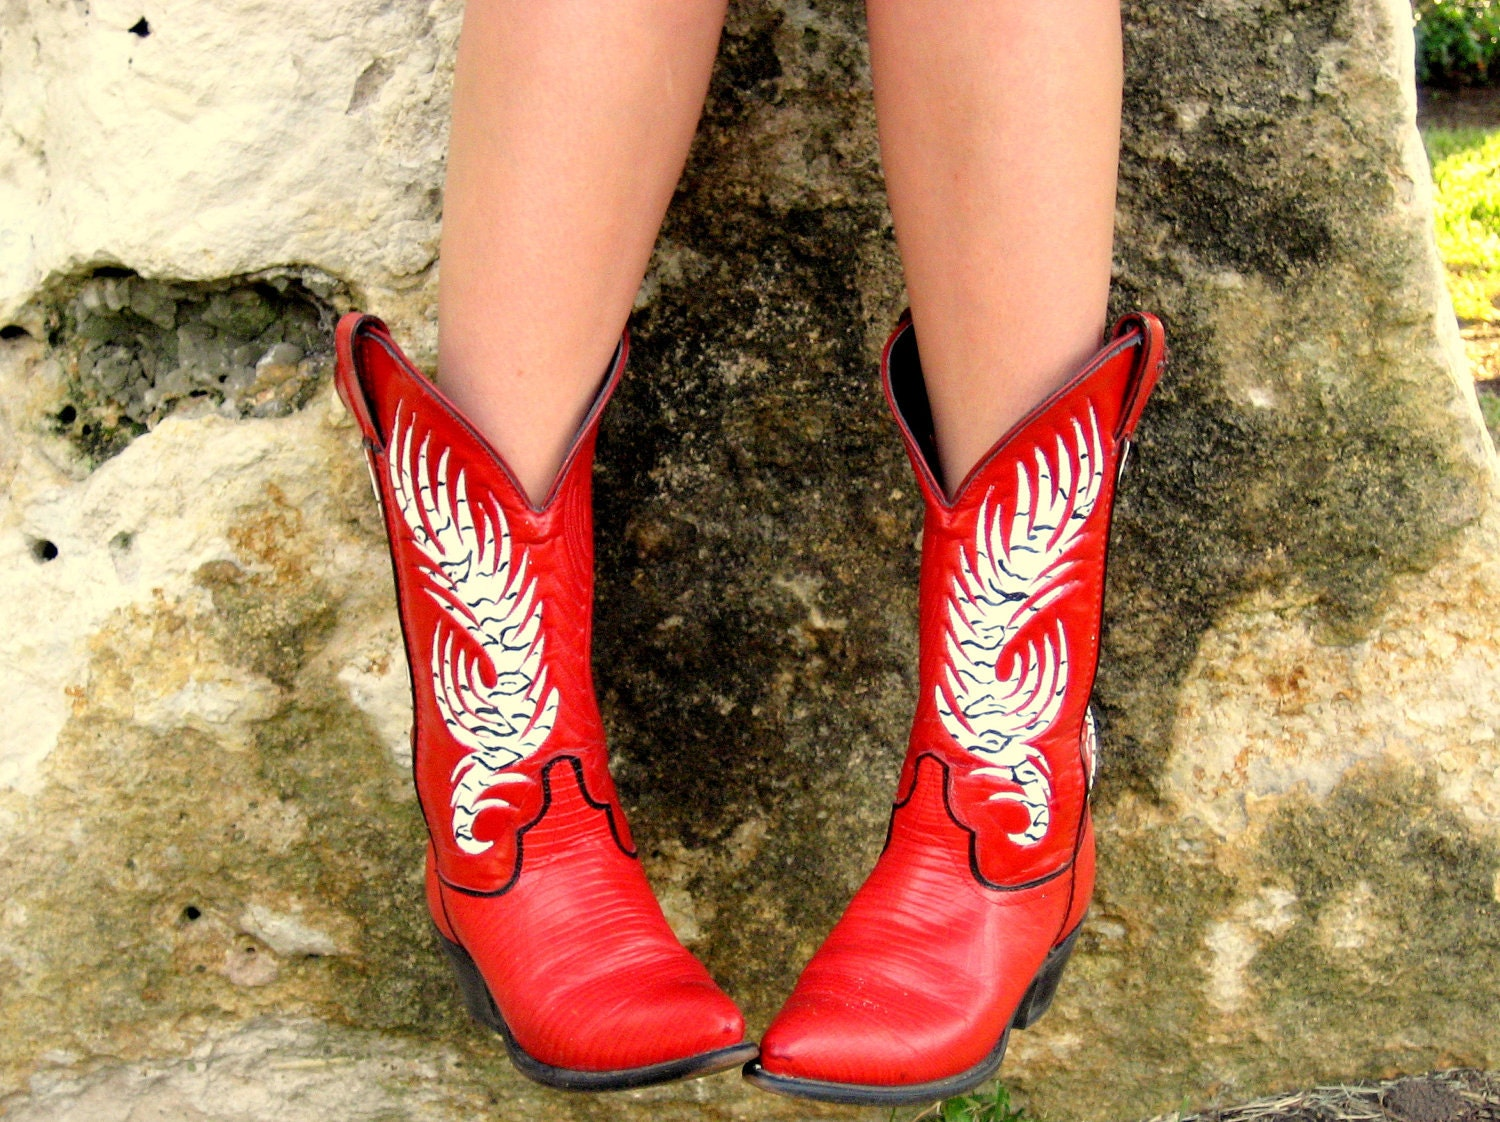 Original Hand Painted Cowboy Boots  Shoes And Socks  Pinterest